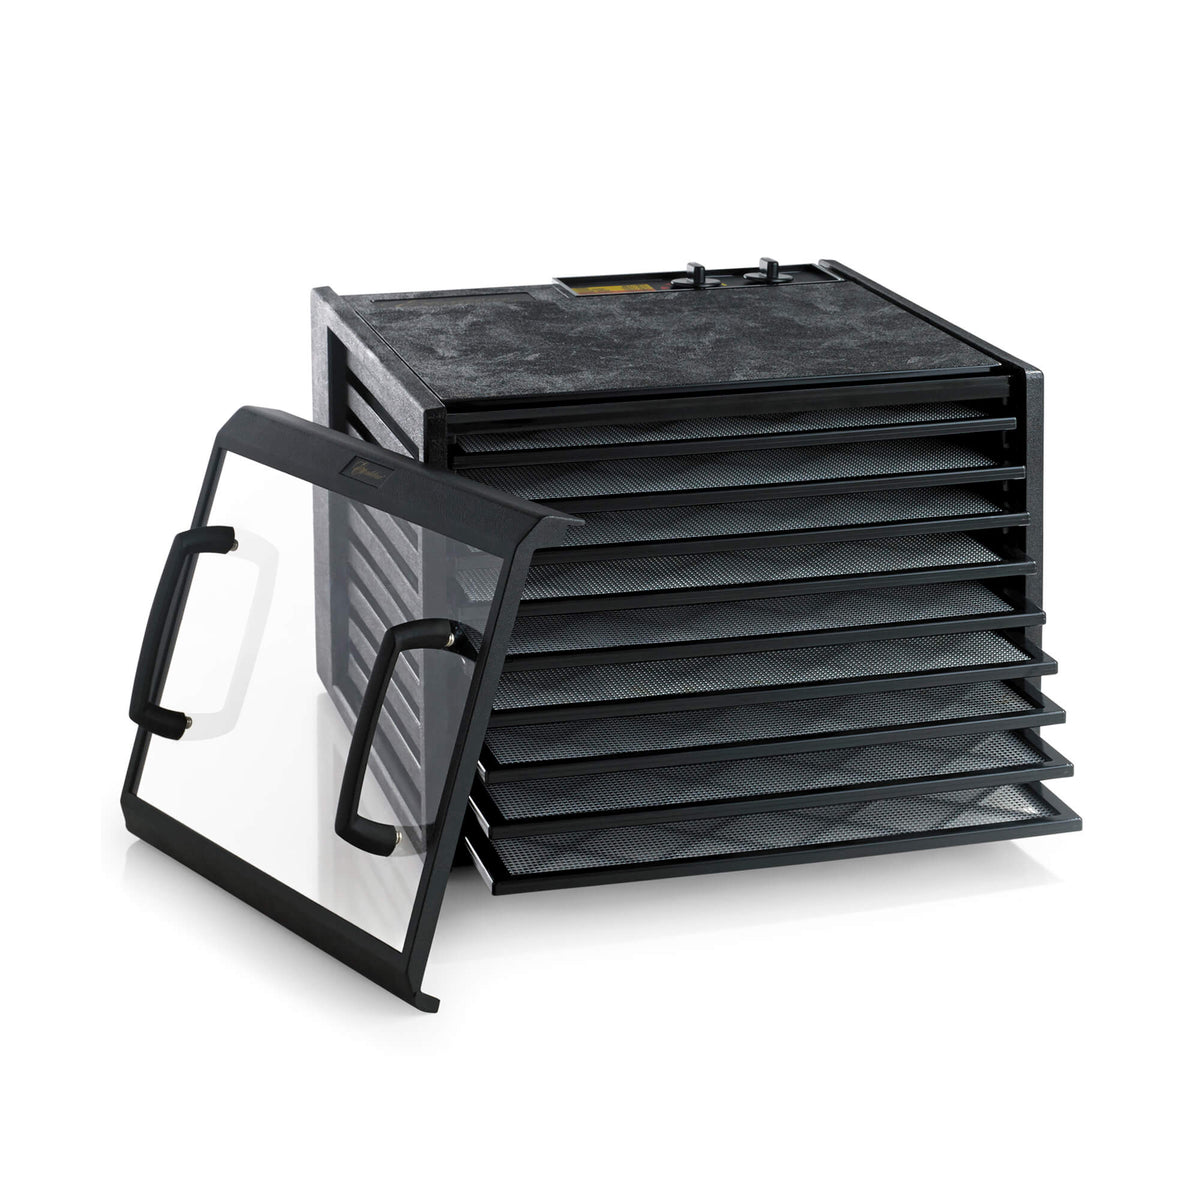 Excalibur 4926TCDB 9 tray dehydrator with clear door propped to the side and trays pulled out.